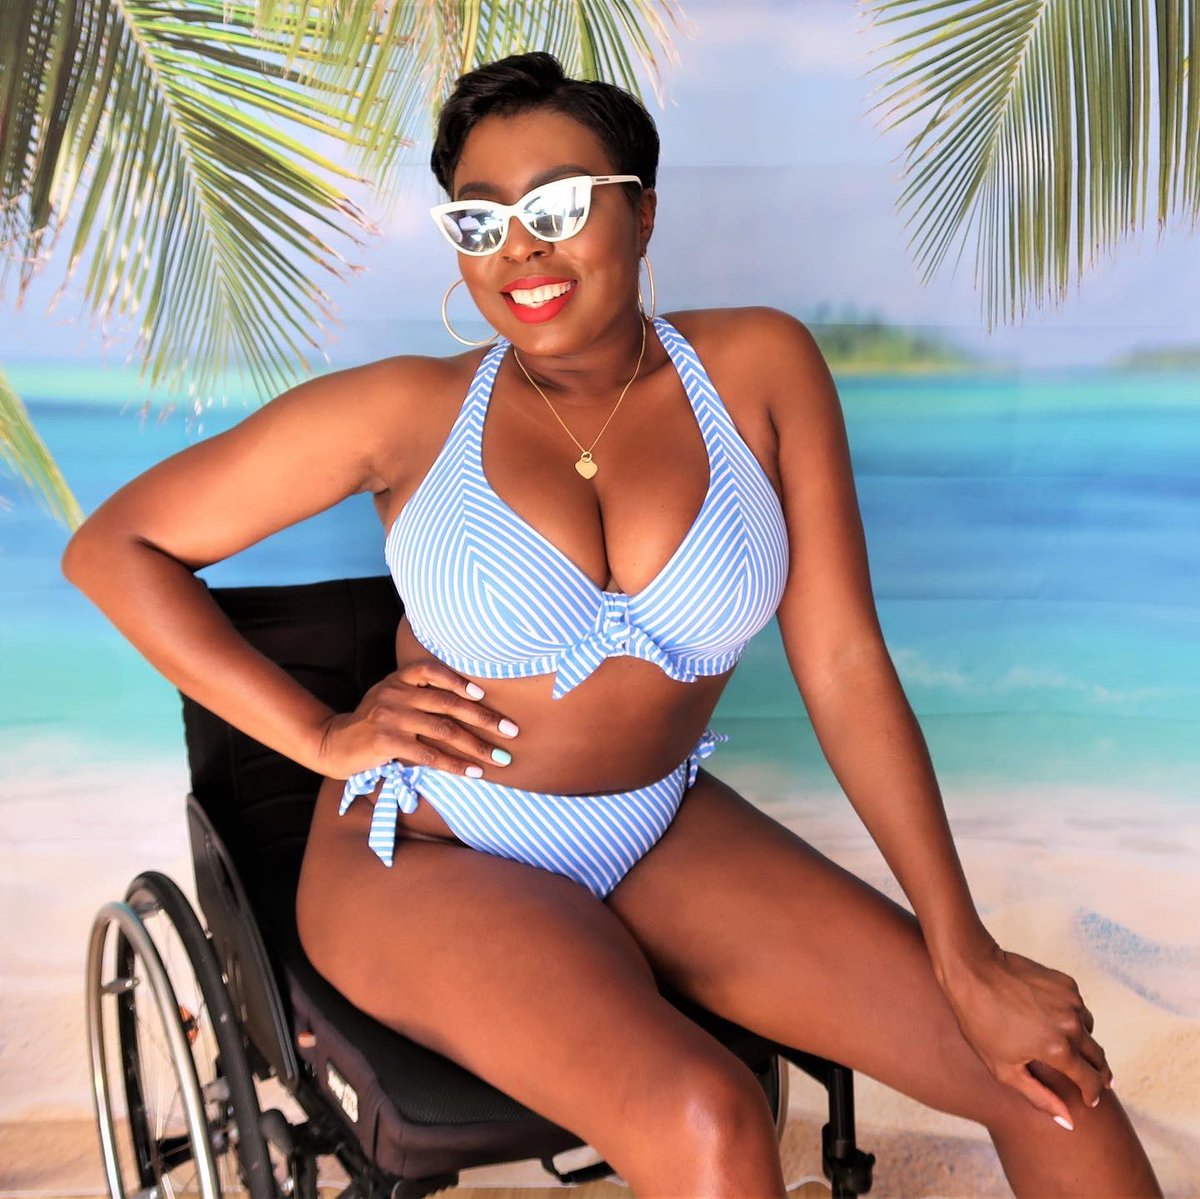 So, as of the 4th July hotels in England will be open. Hands up if you're already planning a holiday? @figleaveshome   #friendsoffigleaves #swimsuit #swimwear #holidayready #bodyconfidencemovement #disabledmodel #styleinspo #bodypositivity #disabledblogger #rollinfunkypic.twitter.com/gmKsVyeRMc